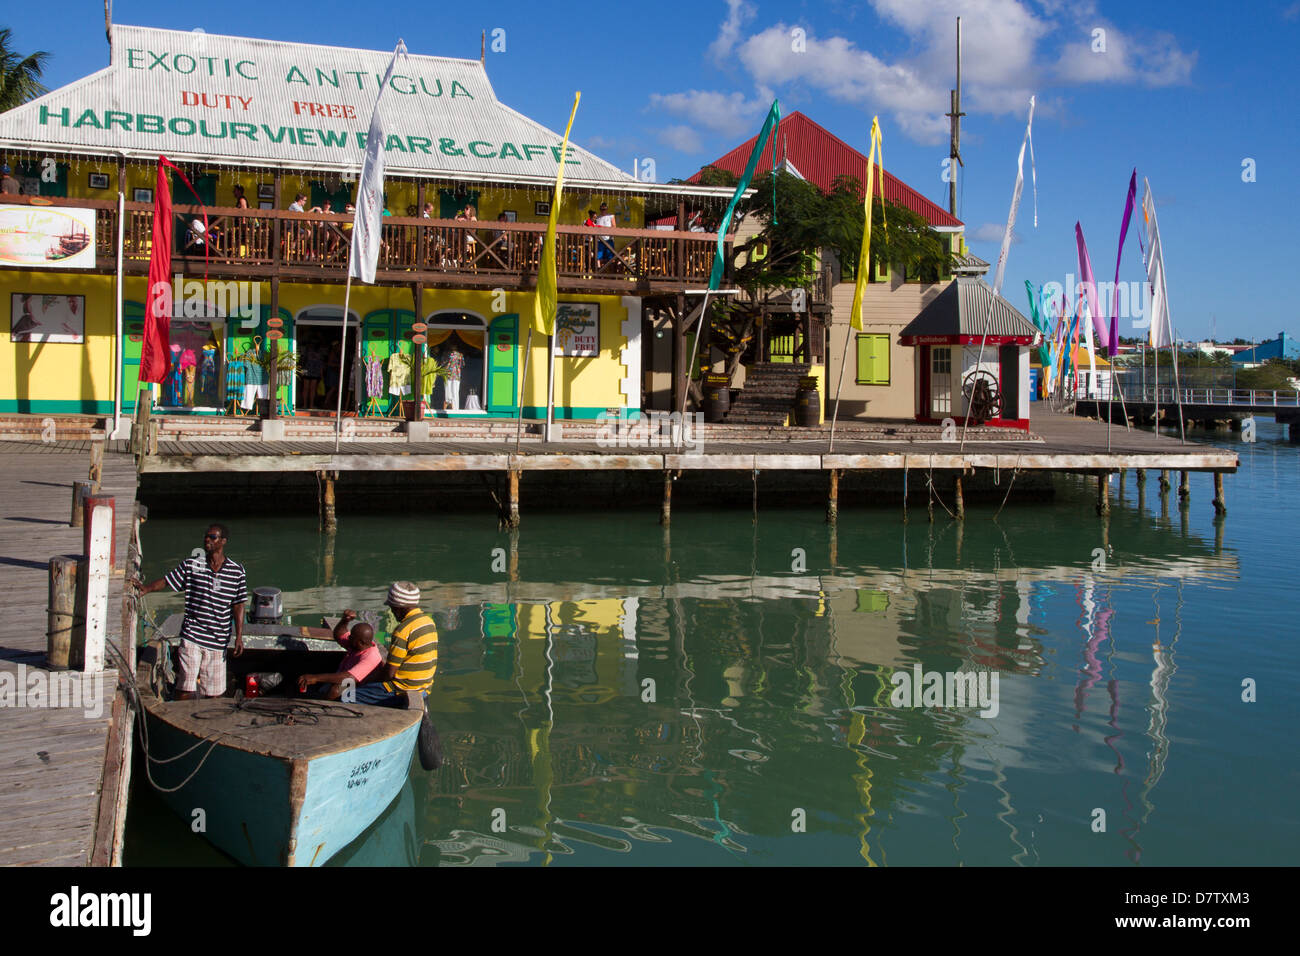 Radcliffe Quay, St. Johns, Antigua, Leeward Islands, West Indies, Caribbean - Stock Image